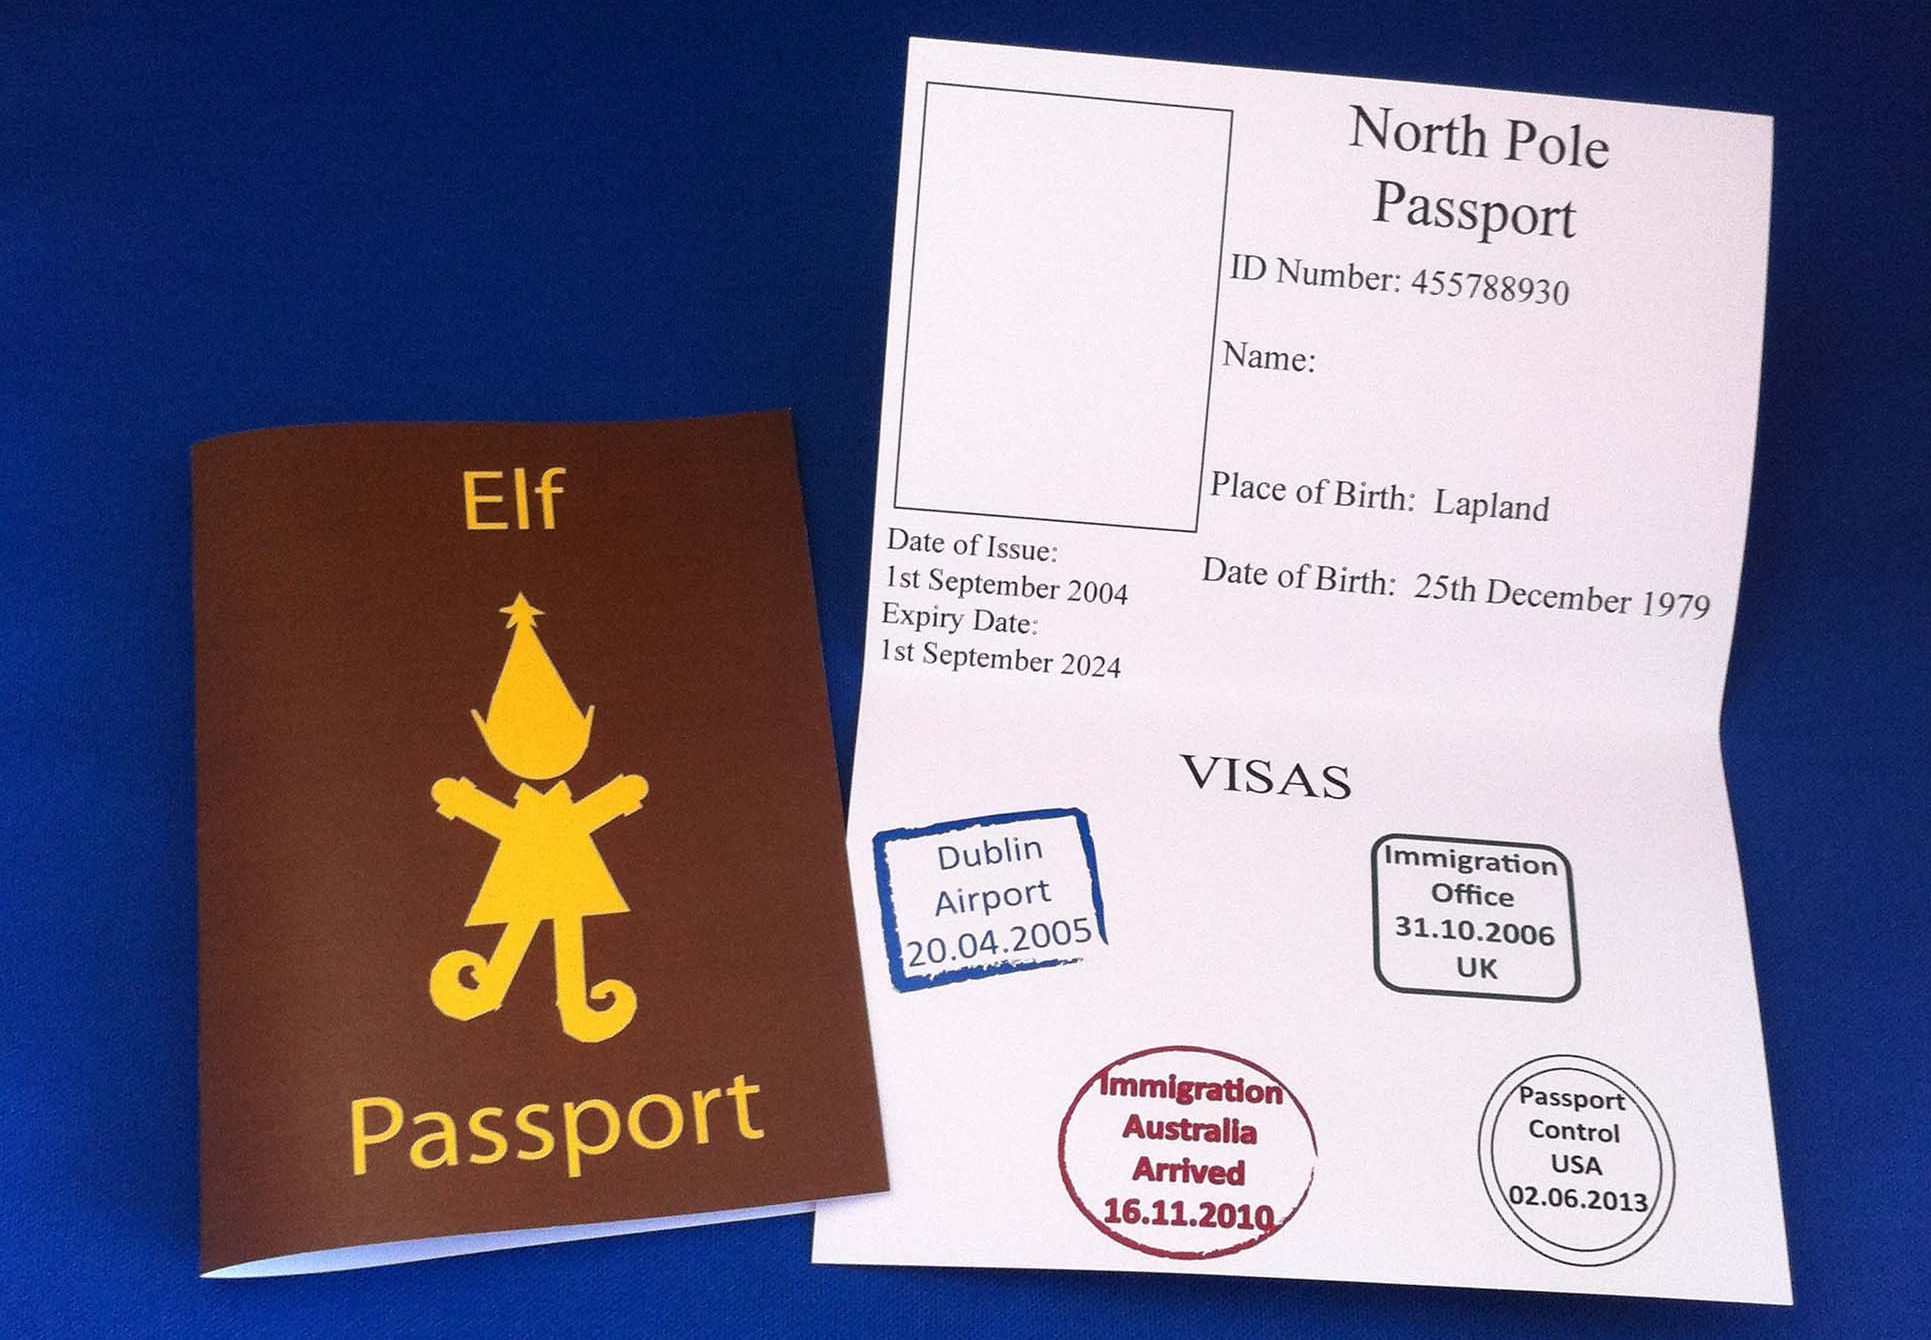 image relating to Passport Printable named Printable Elf Pport - Xmas Printables